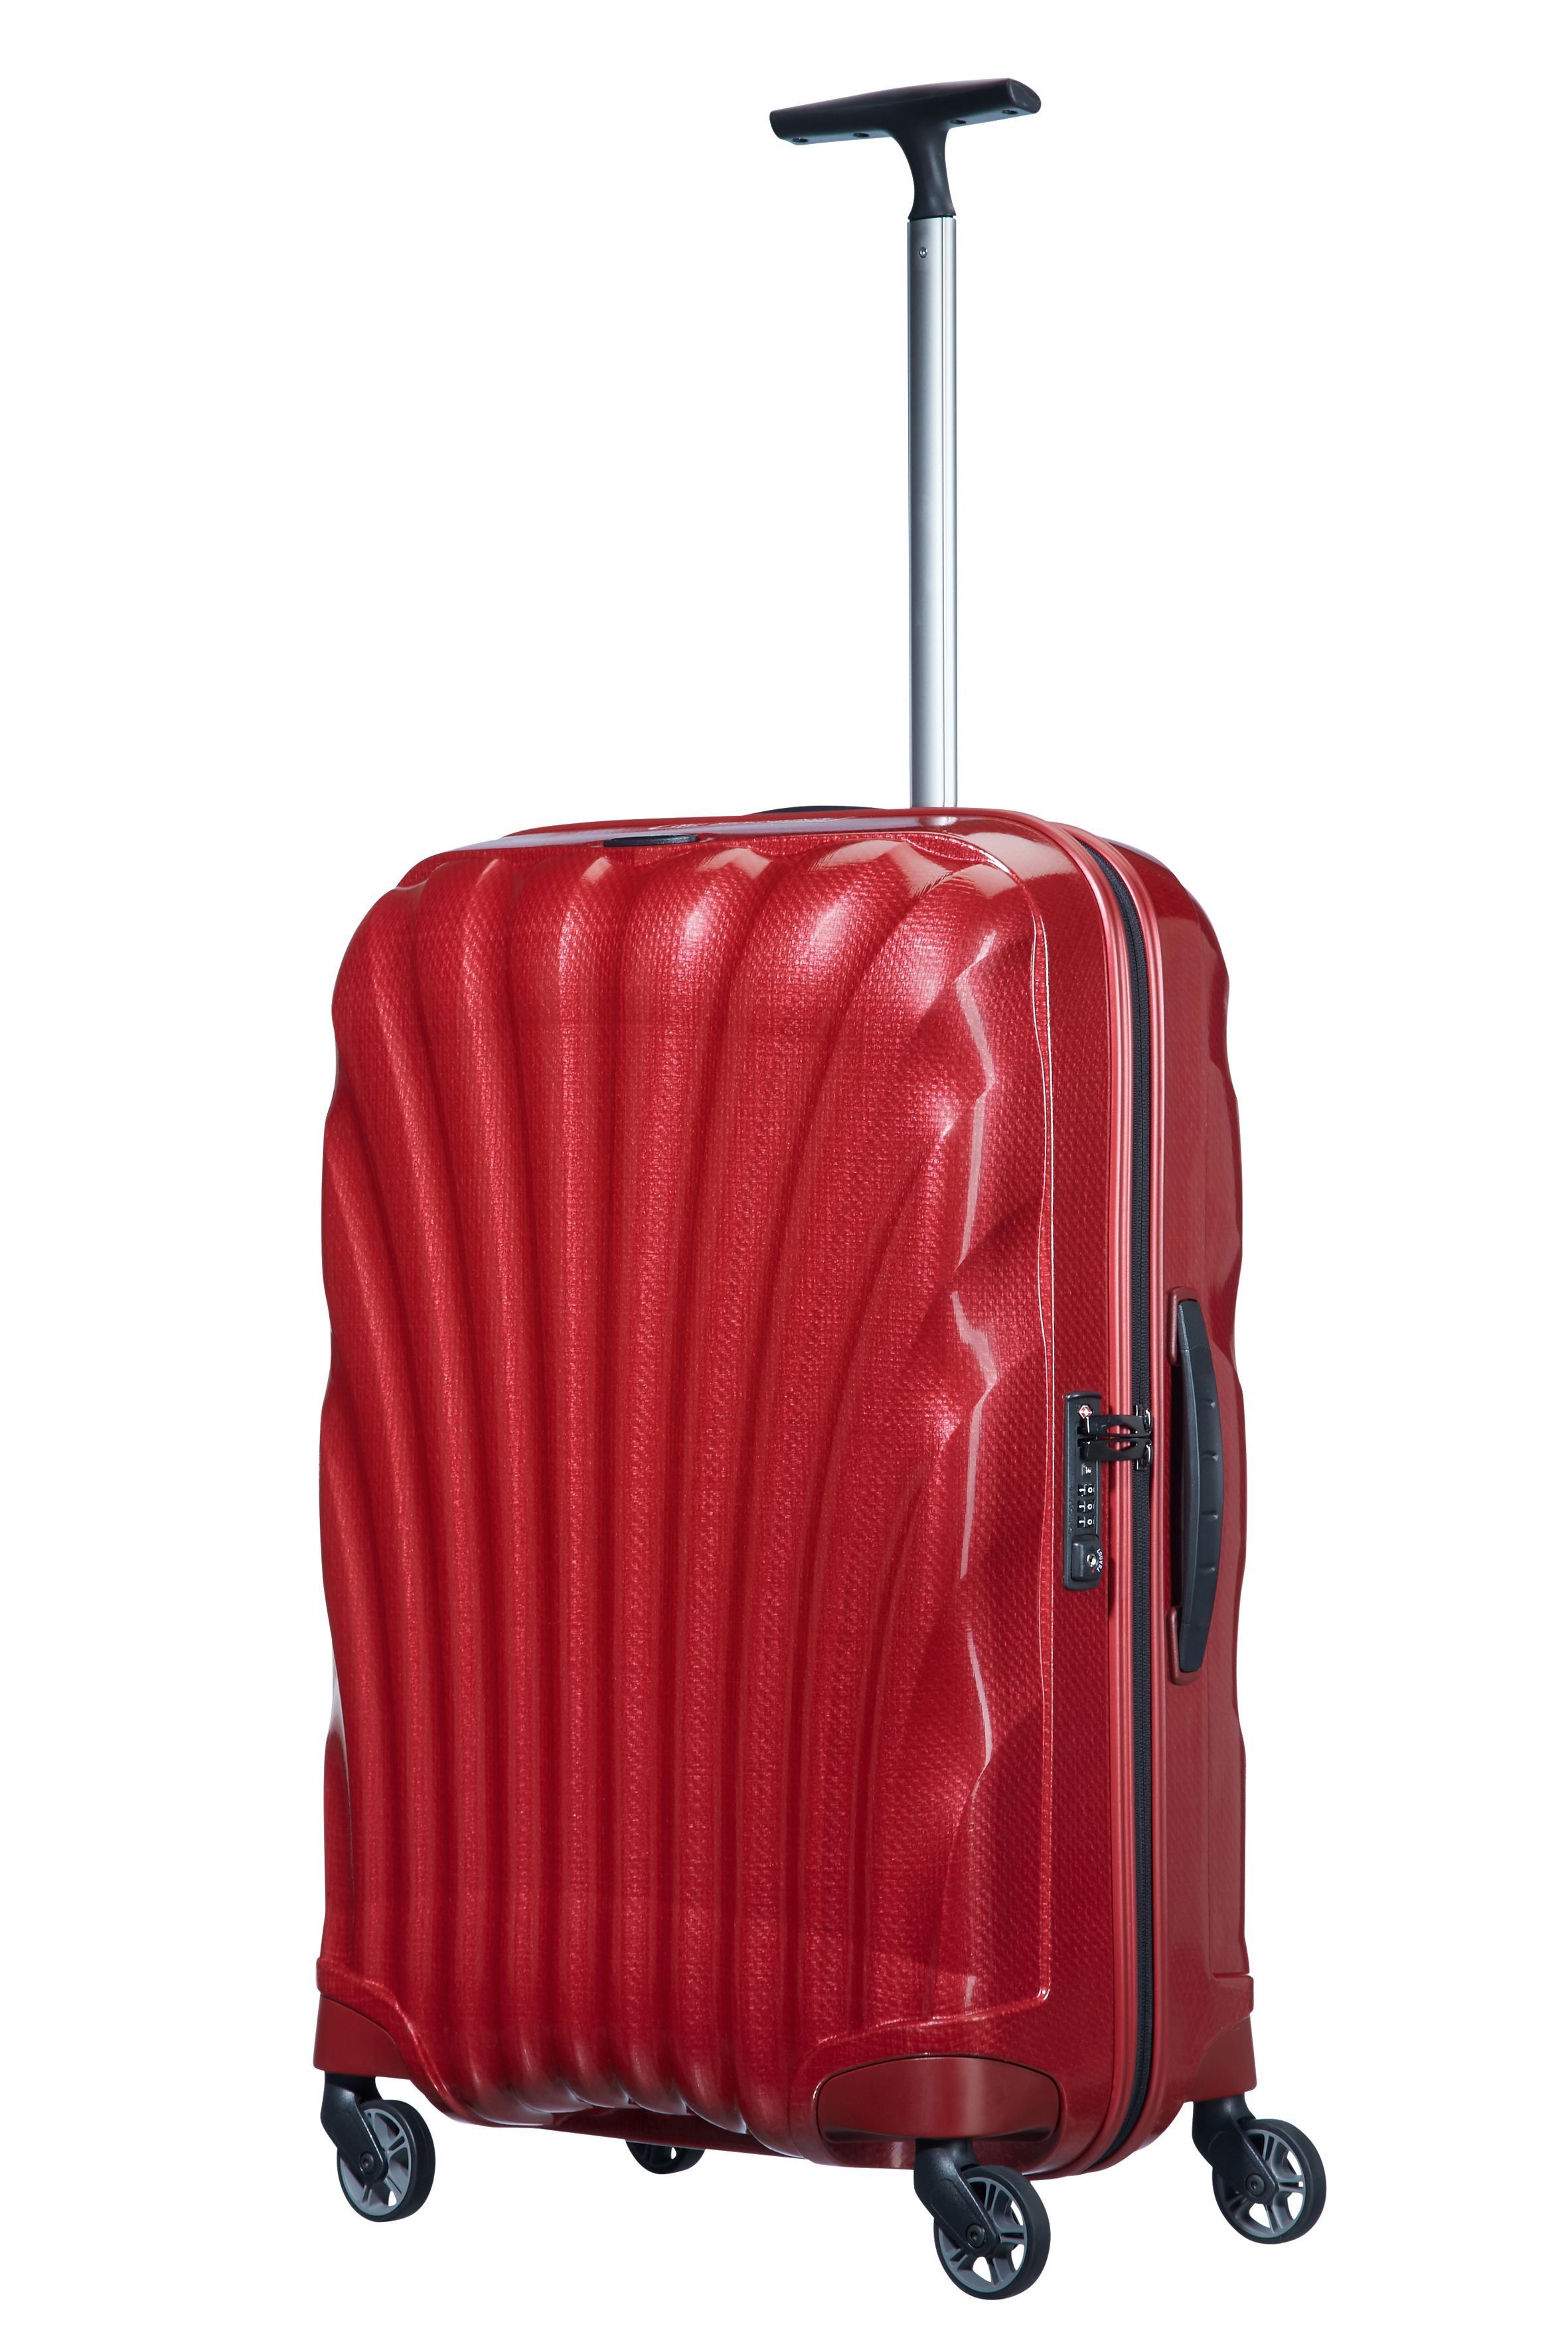 Samsonite Cosmolite 3.0 red 4 wheel 69cm medium suitcase Red